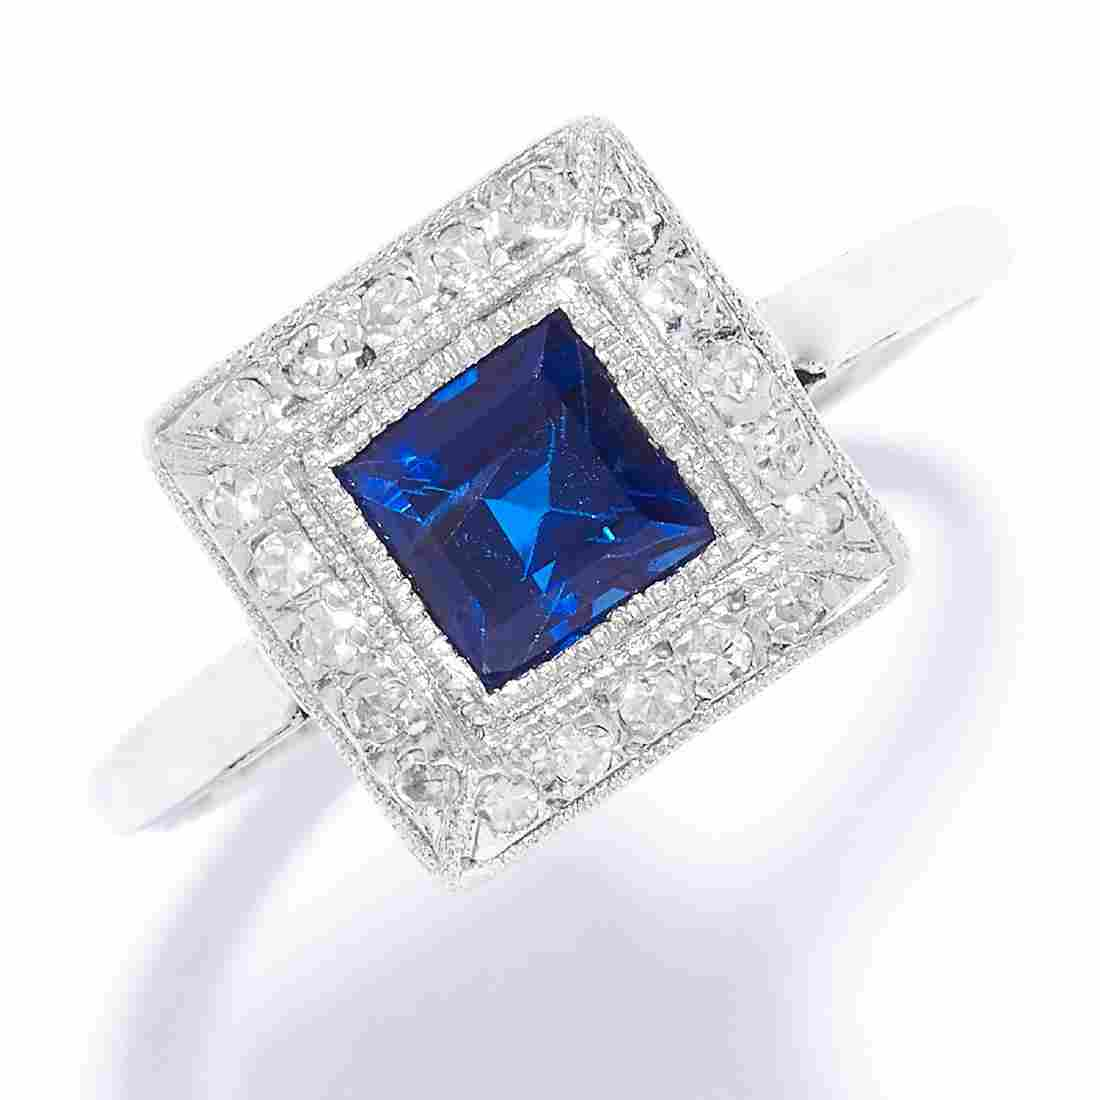 ART DECO SAPPHIRE AND DIAMOND RING in 18ct white gold